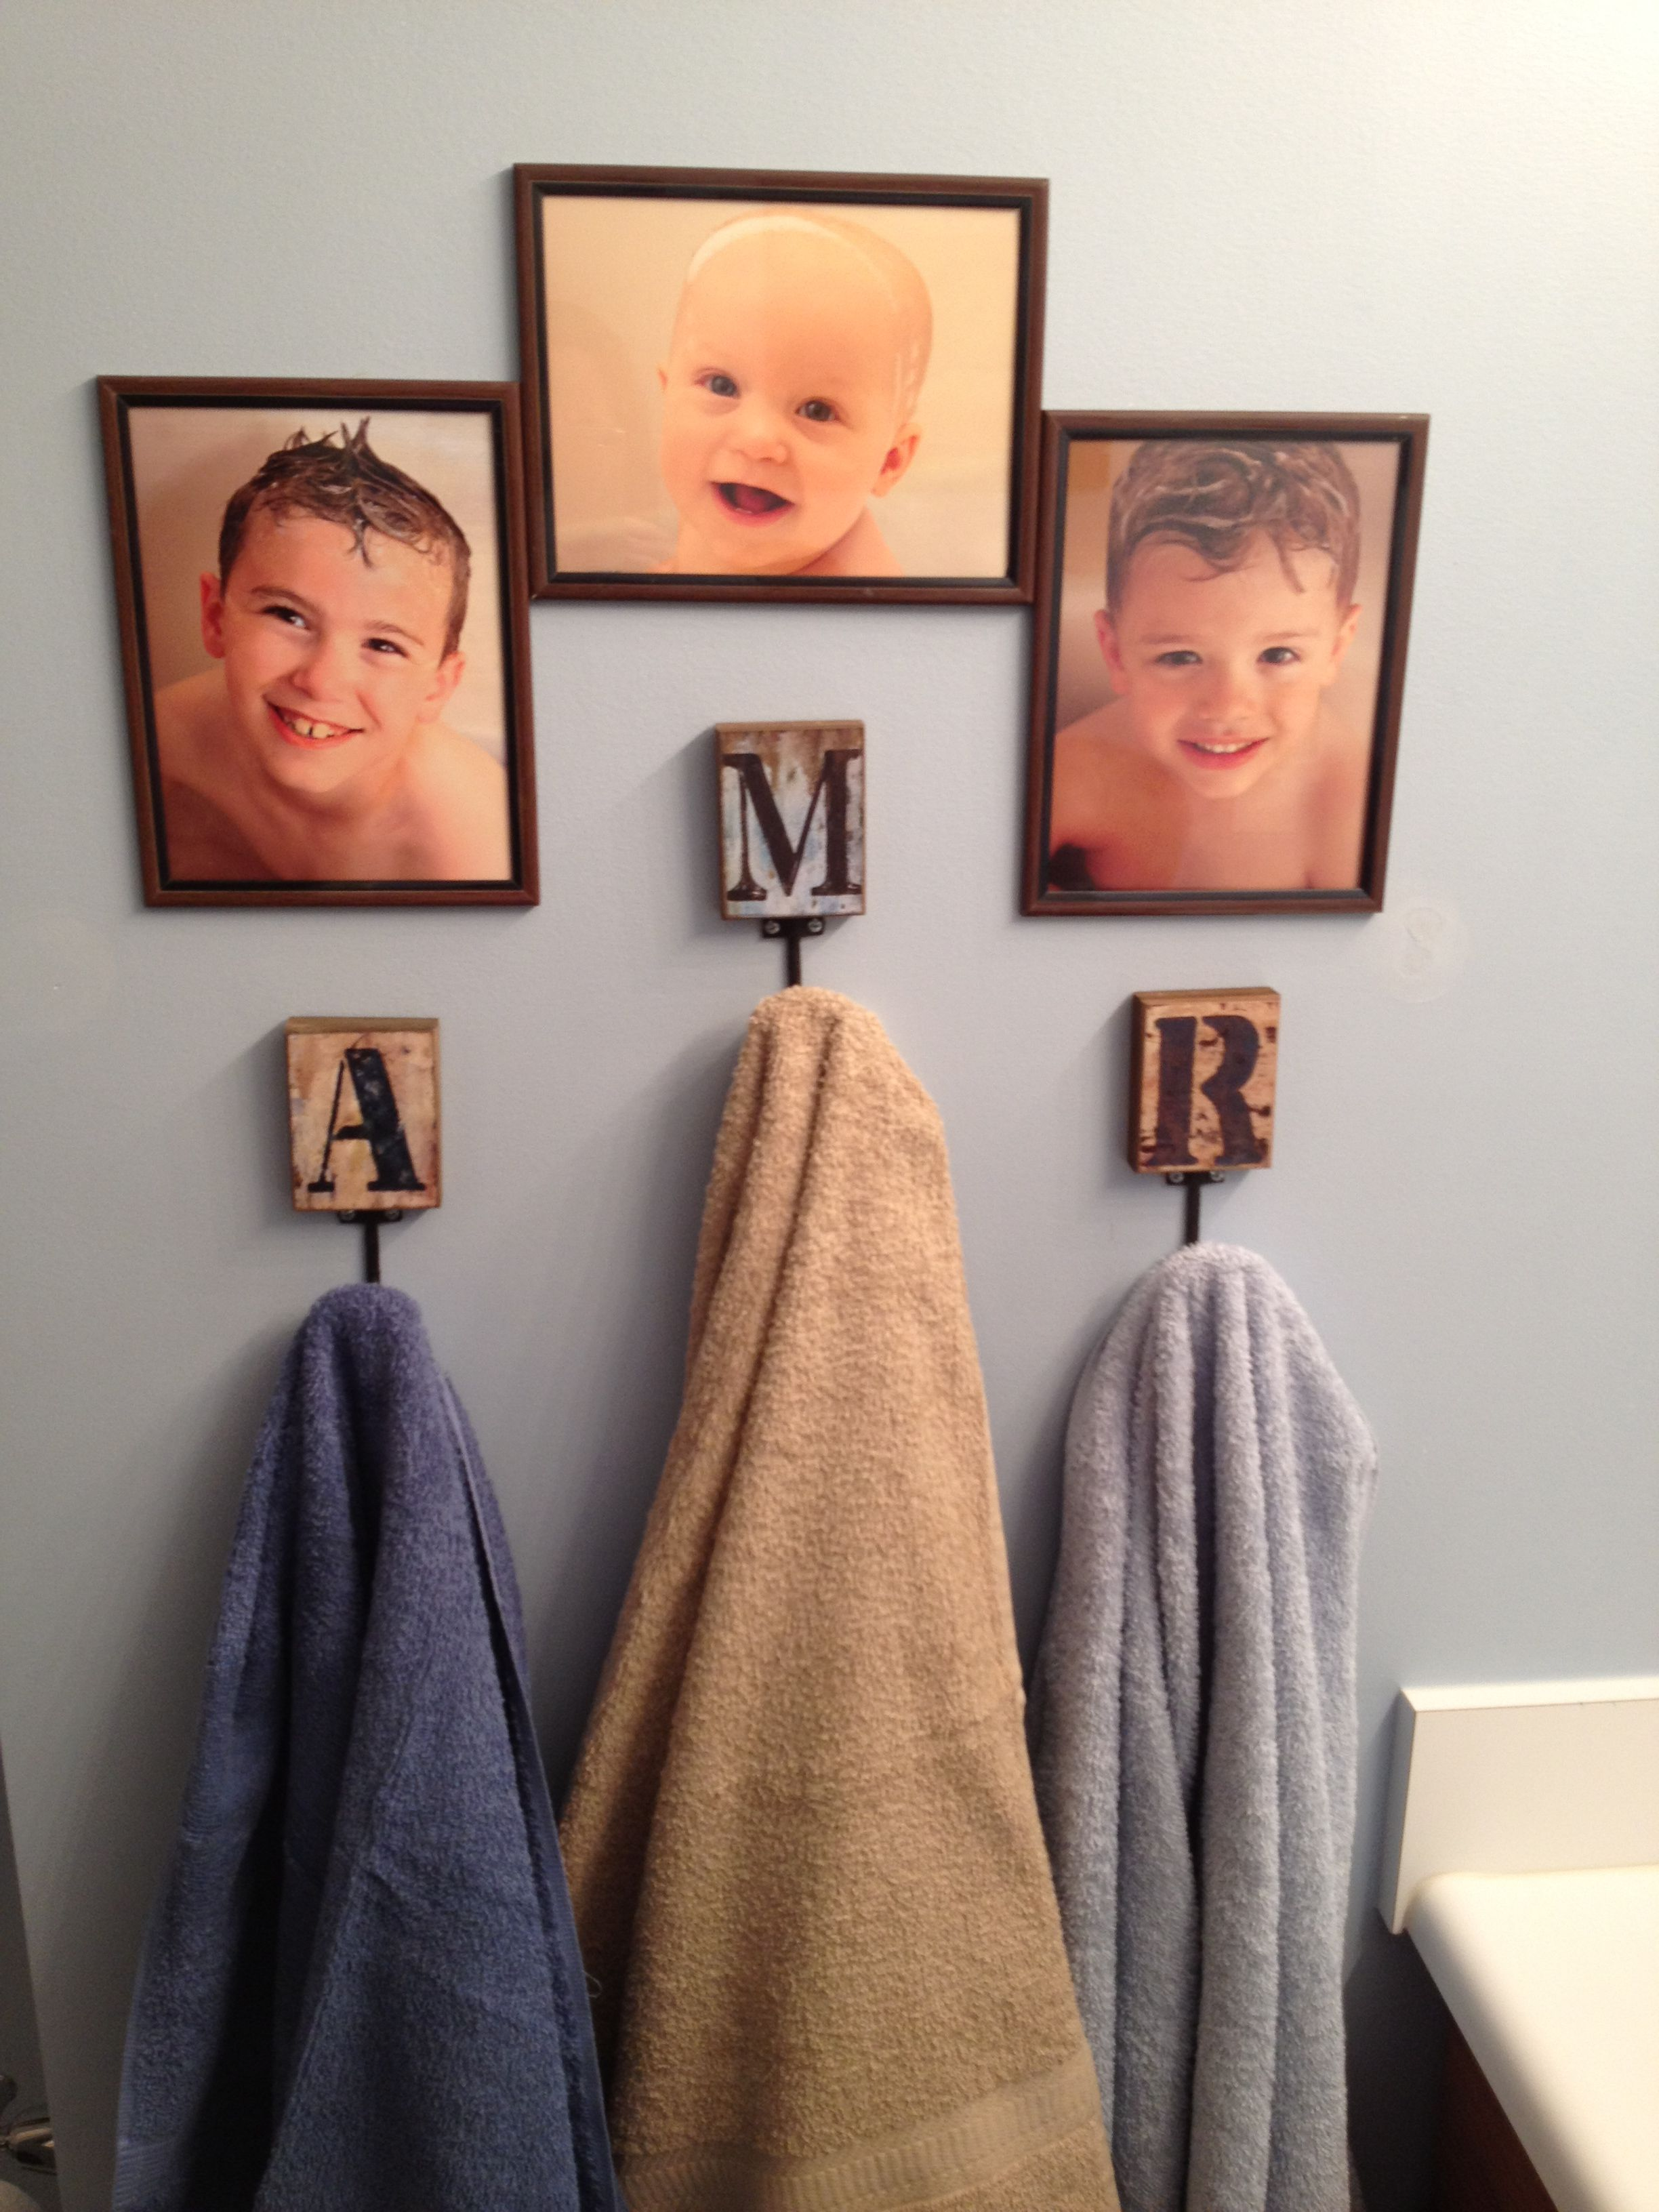 Decorating a kids bathroom - took close up face shots only of them with wet heads and bubbles and framed their pictures above a monogrammed hook with their first initial to hang their towels from.